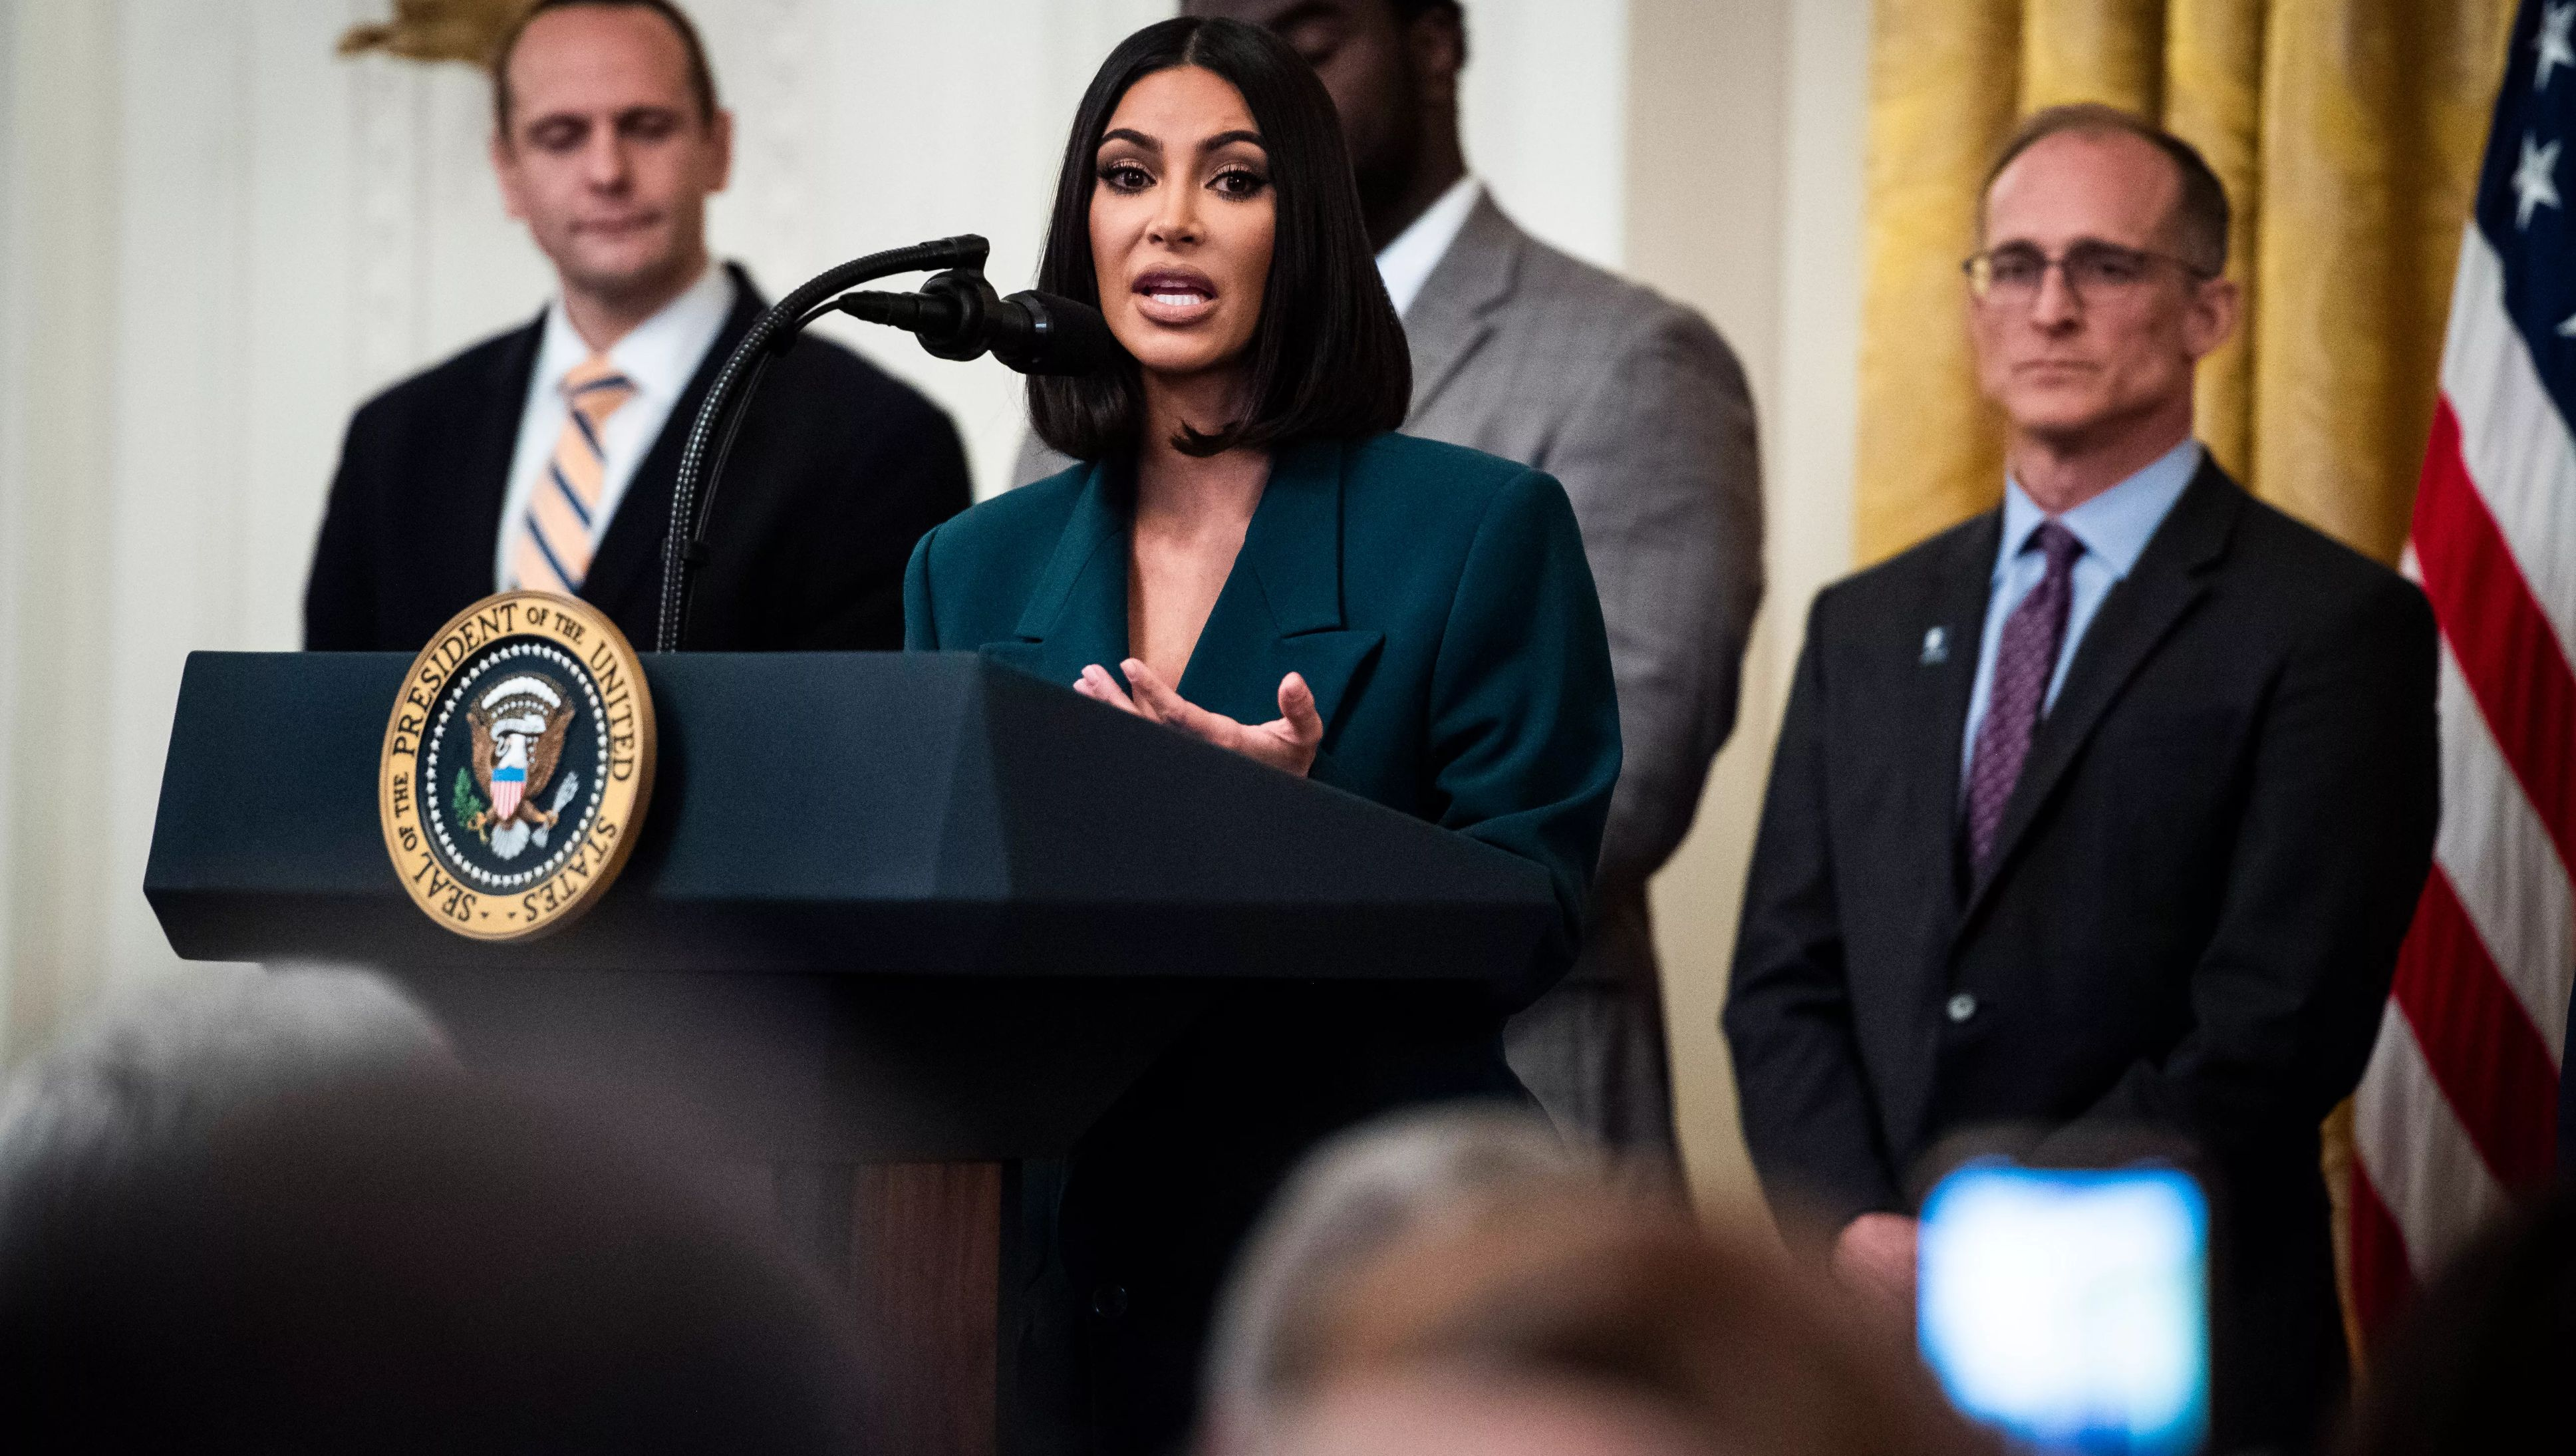 WASHINGTON, DC - JUNE 13 : Kim Kardashian speaks with President Donald J. Trump at an event on promoting second chance hiring to ensure Americans have opportunities to succeed after leaving prison in the East Room at the White House on Thursday, June 13, 2019 in Washington, DC.